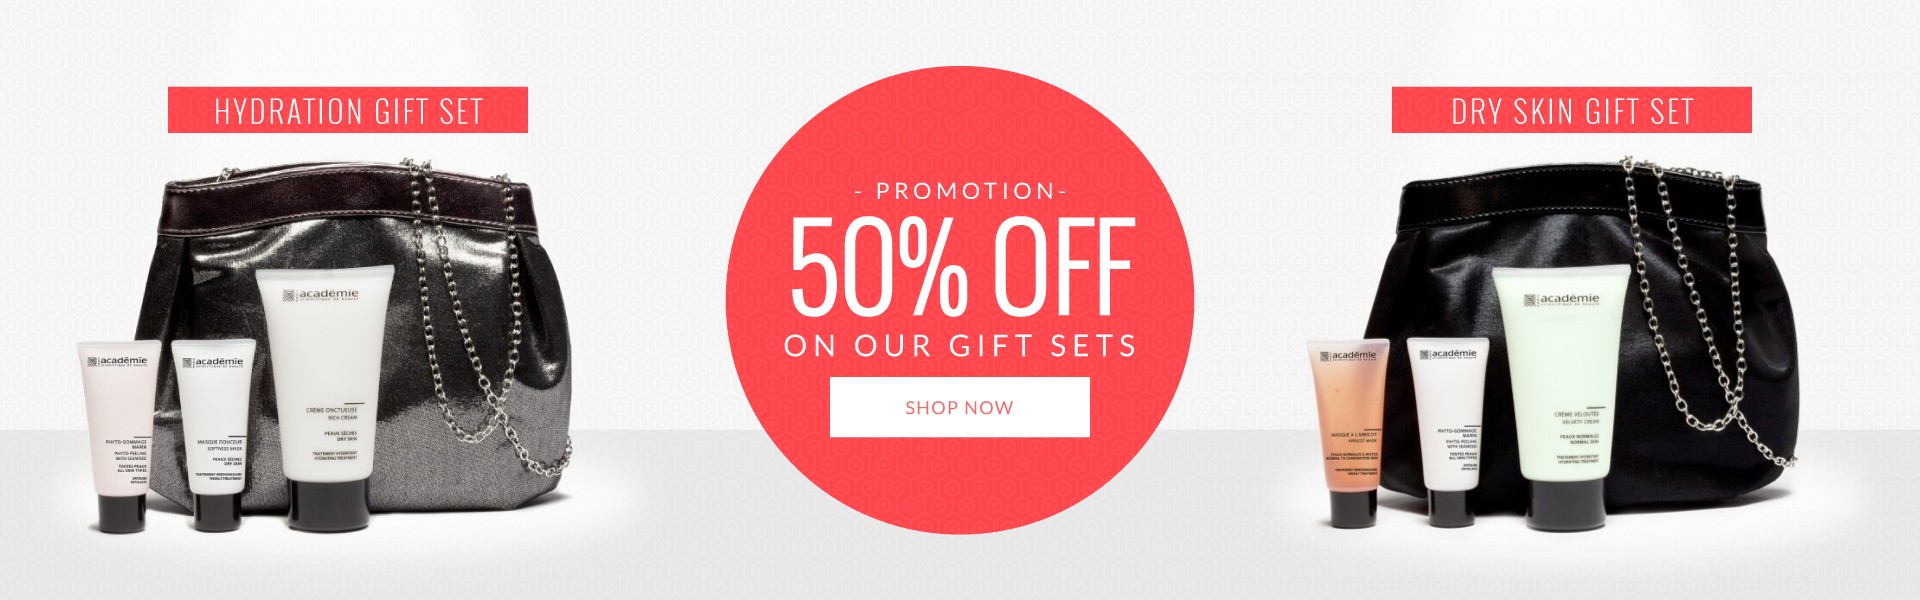 Promotion 50%OFF on Selected Gift Sets